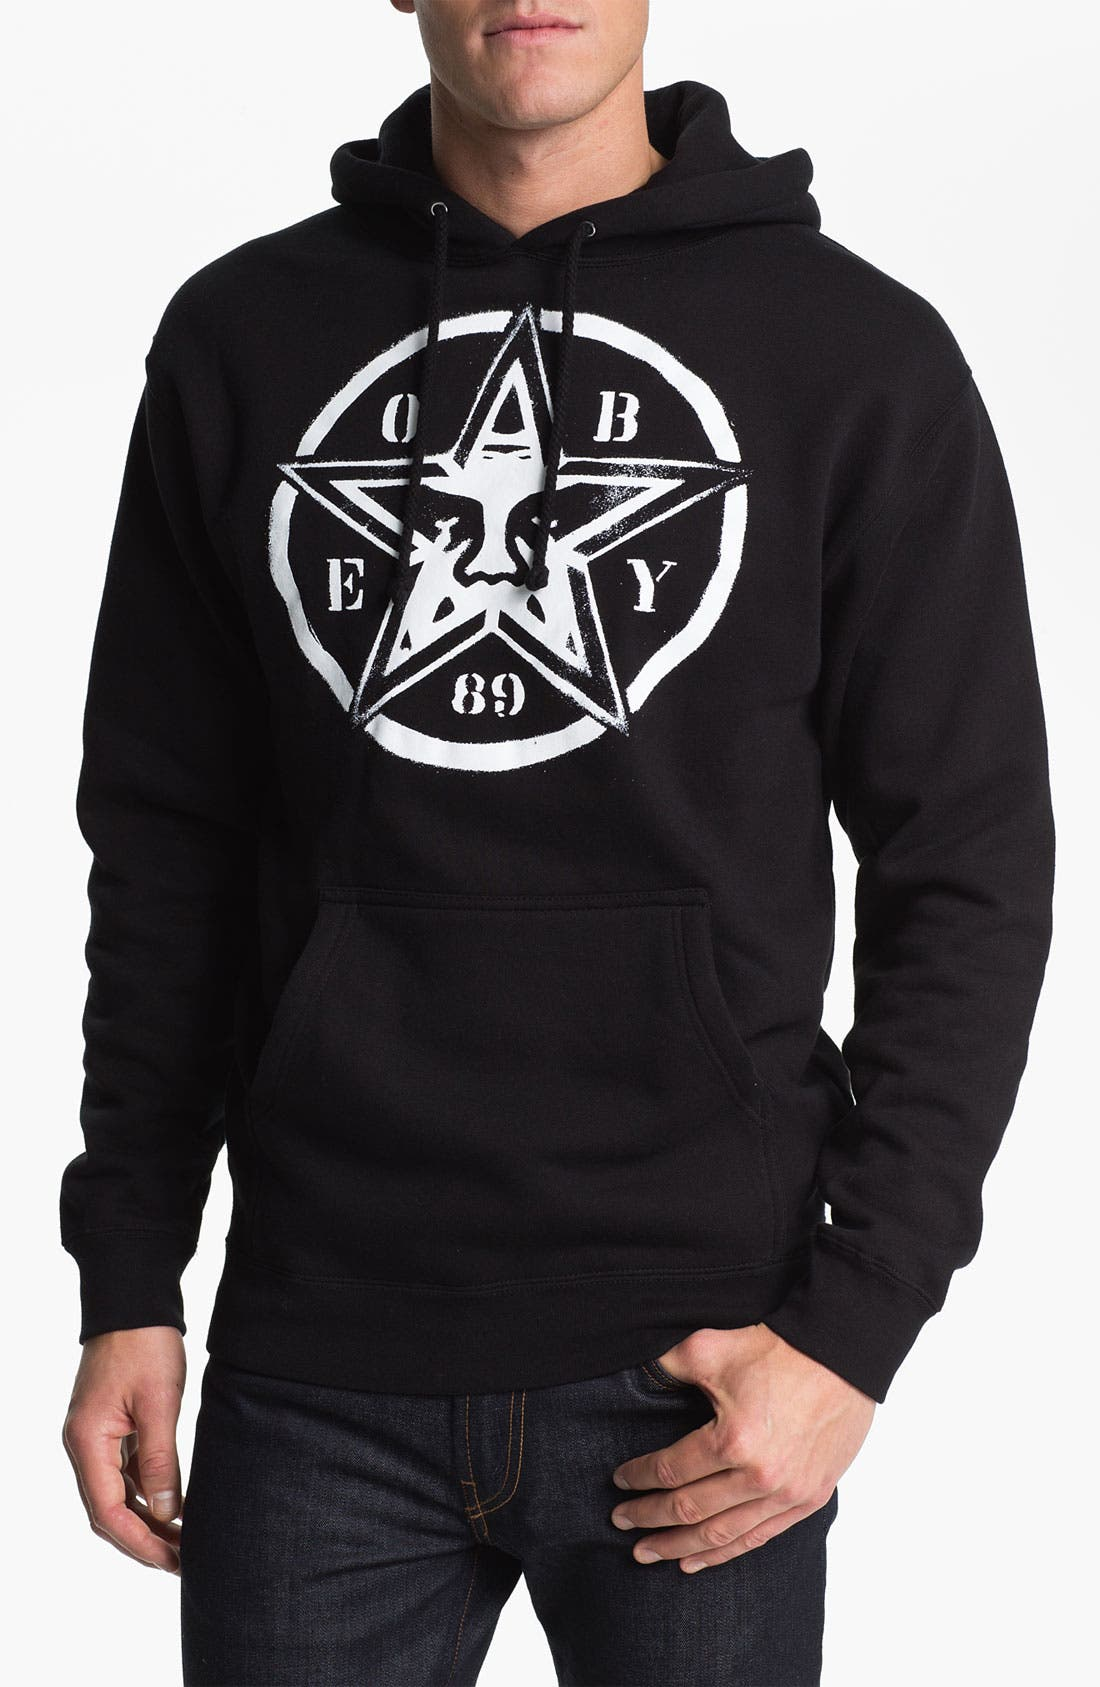 Main Image - Obey 'Star Stencil' Regular Fit Hooded Sweatshirt